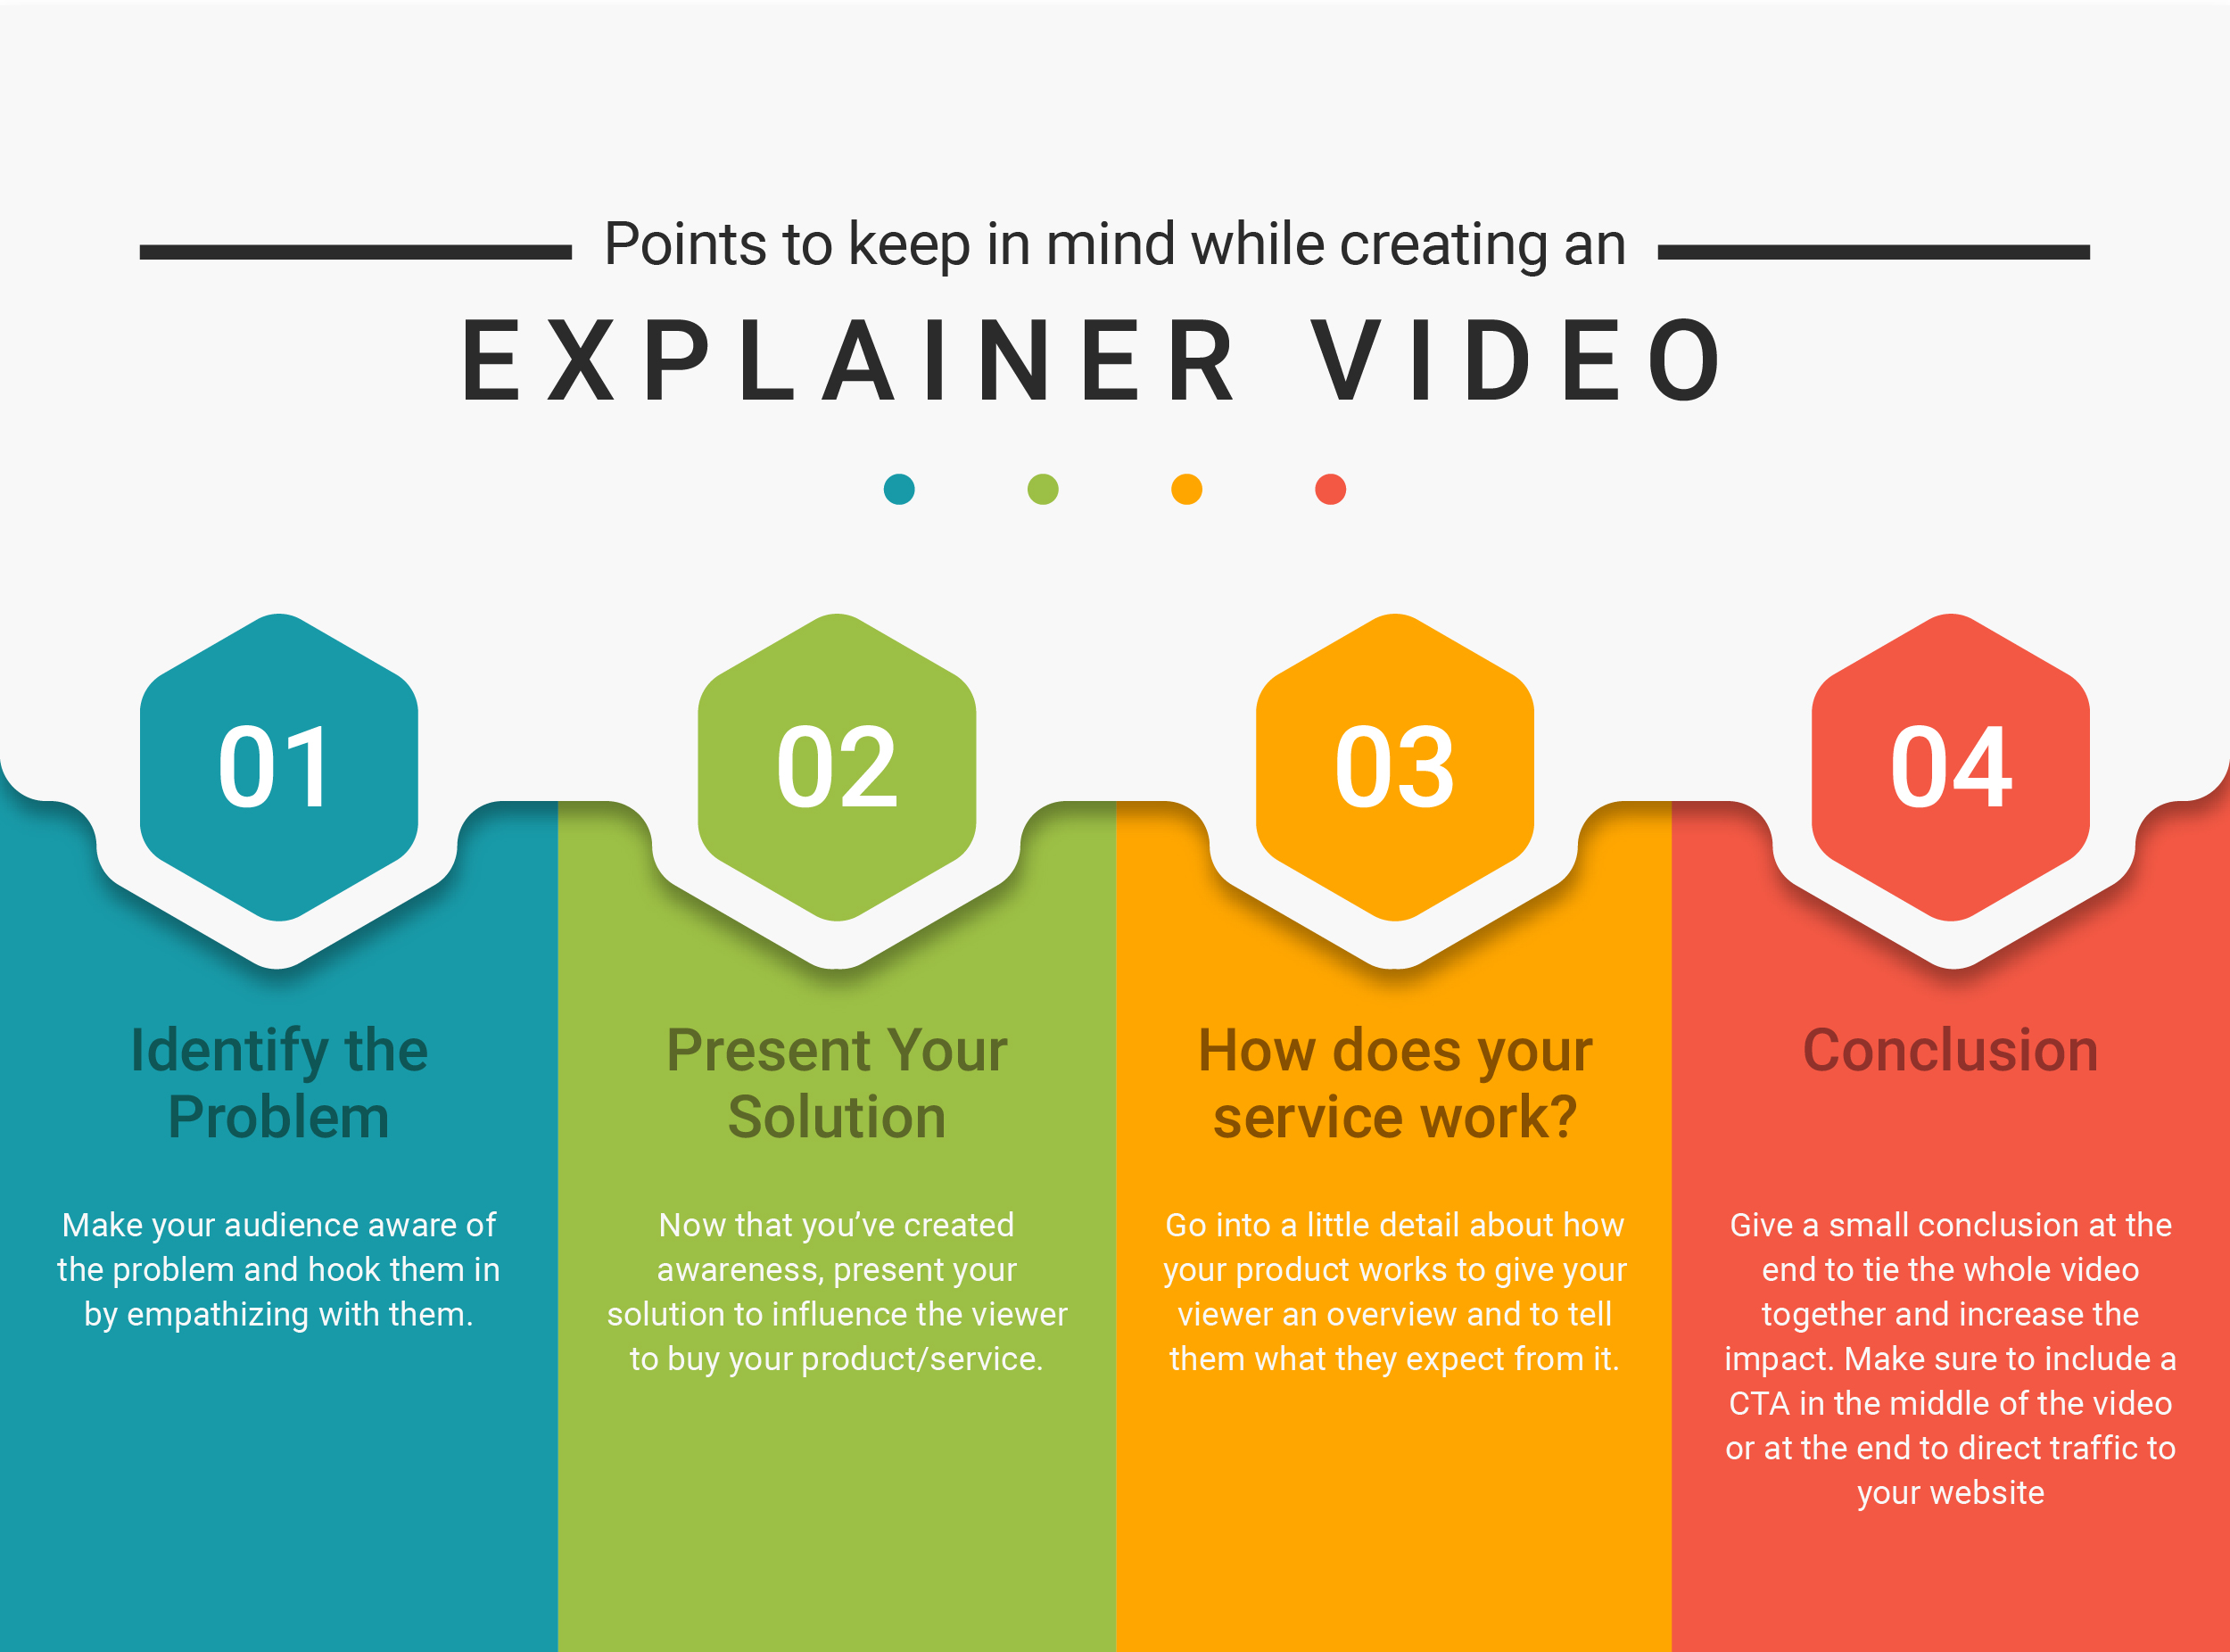 Points to keep in Mind when creating an explainer video